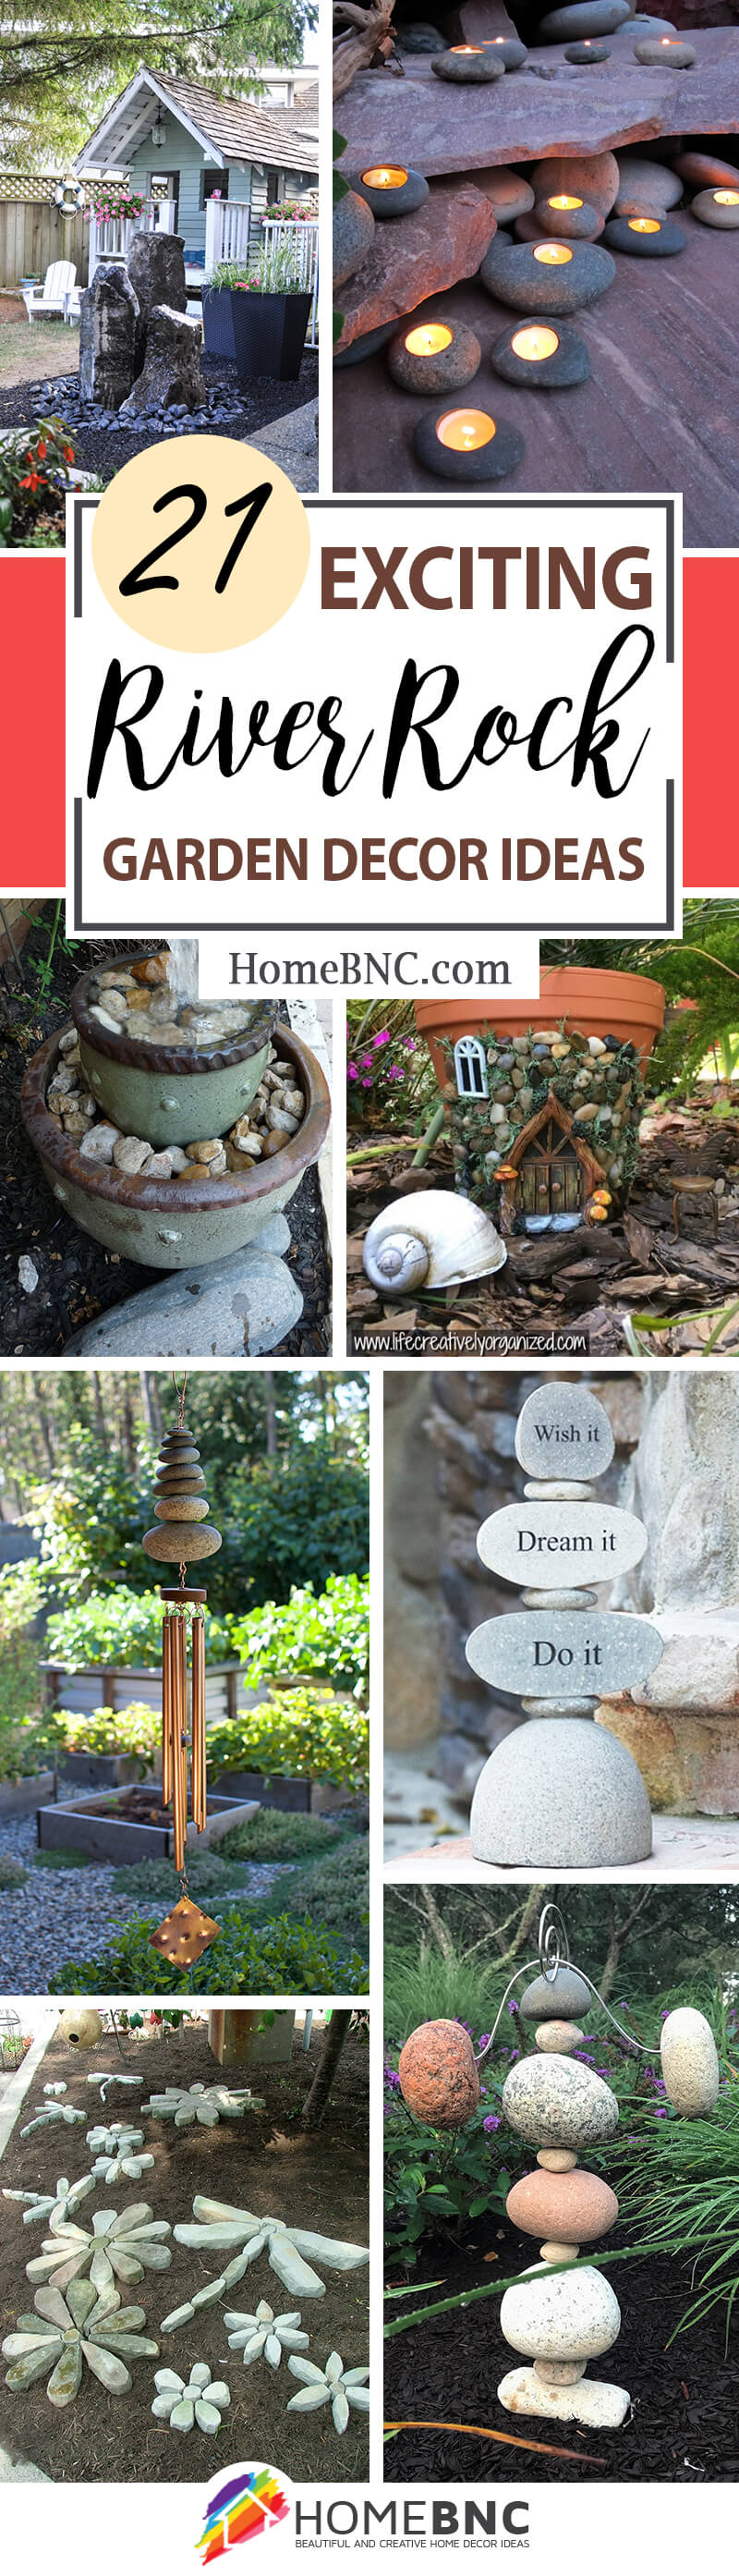 River Rock and Stone Garden Decorating Ideas